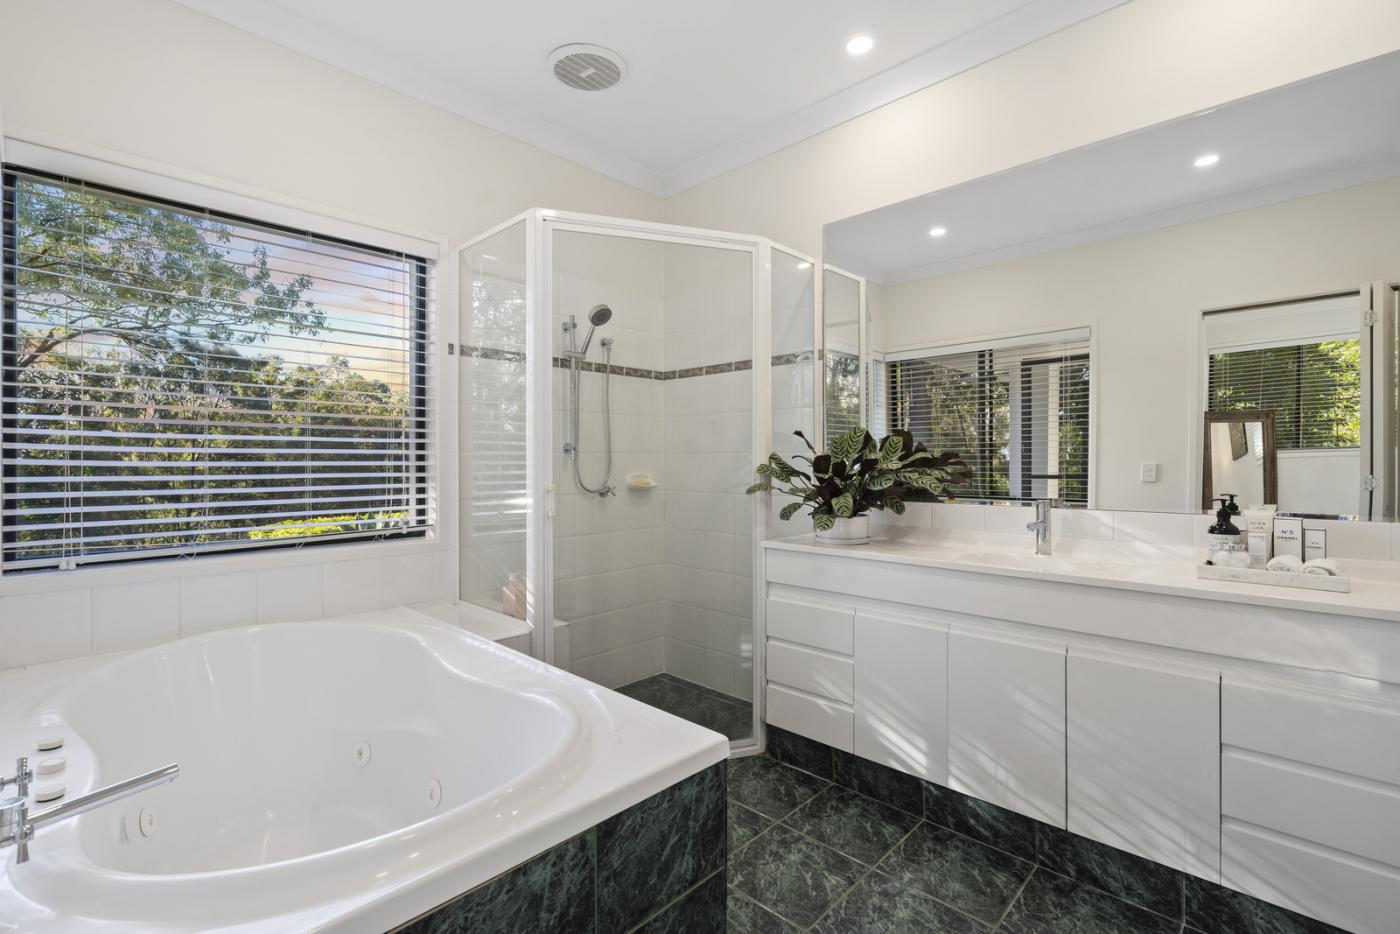 M-Motion Real Estate, 26_12 Handel Ave, Worongary, QLD, 4213, Viviane Madrieux, Best Real Estate Agent Gold Coast, Queensland Australia